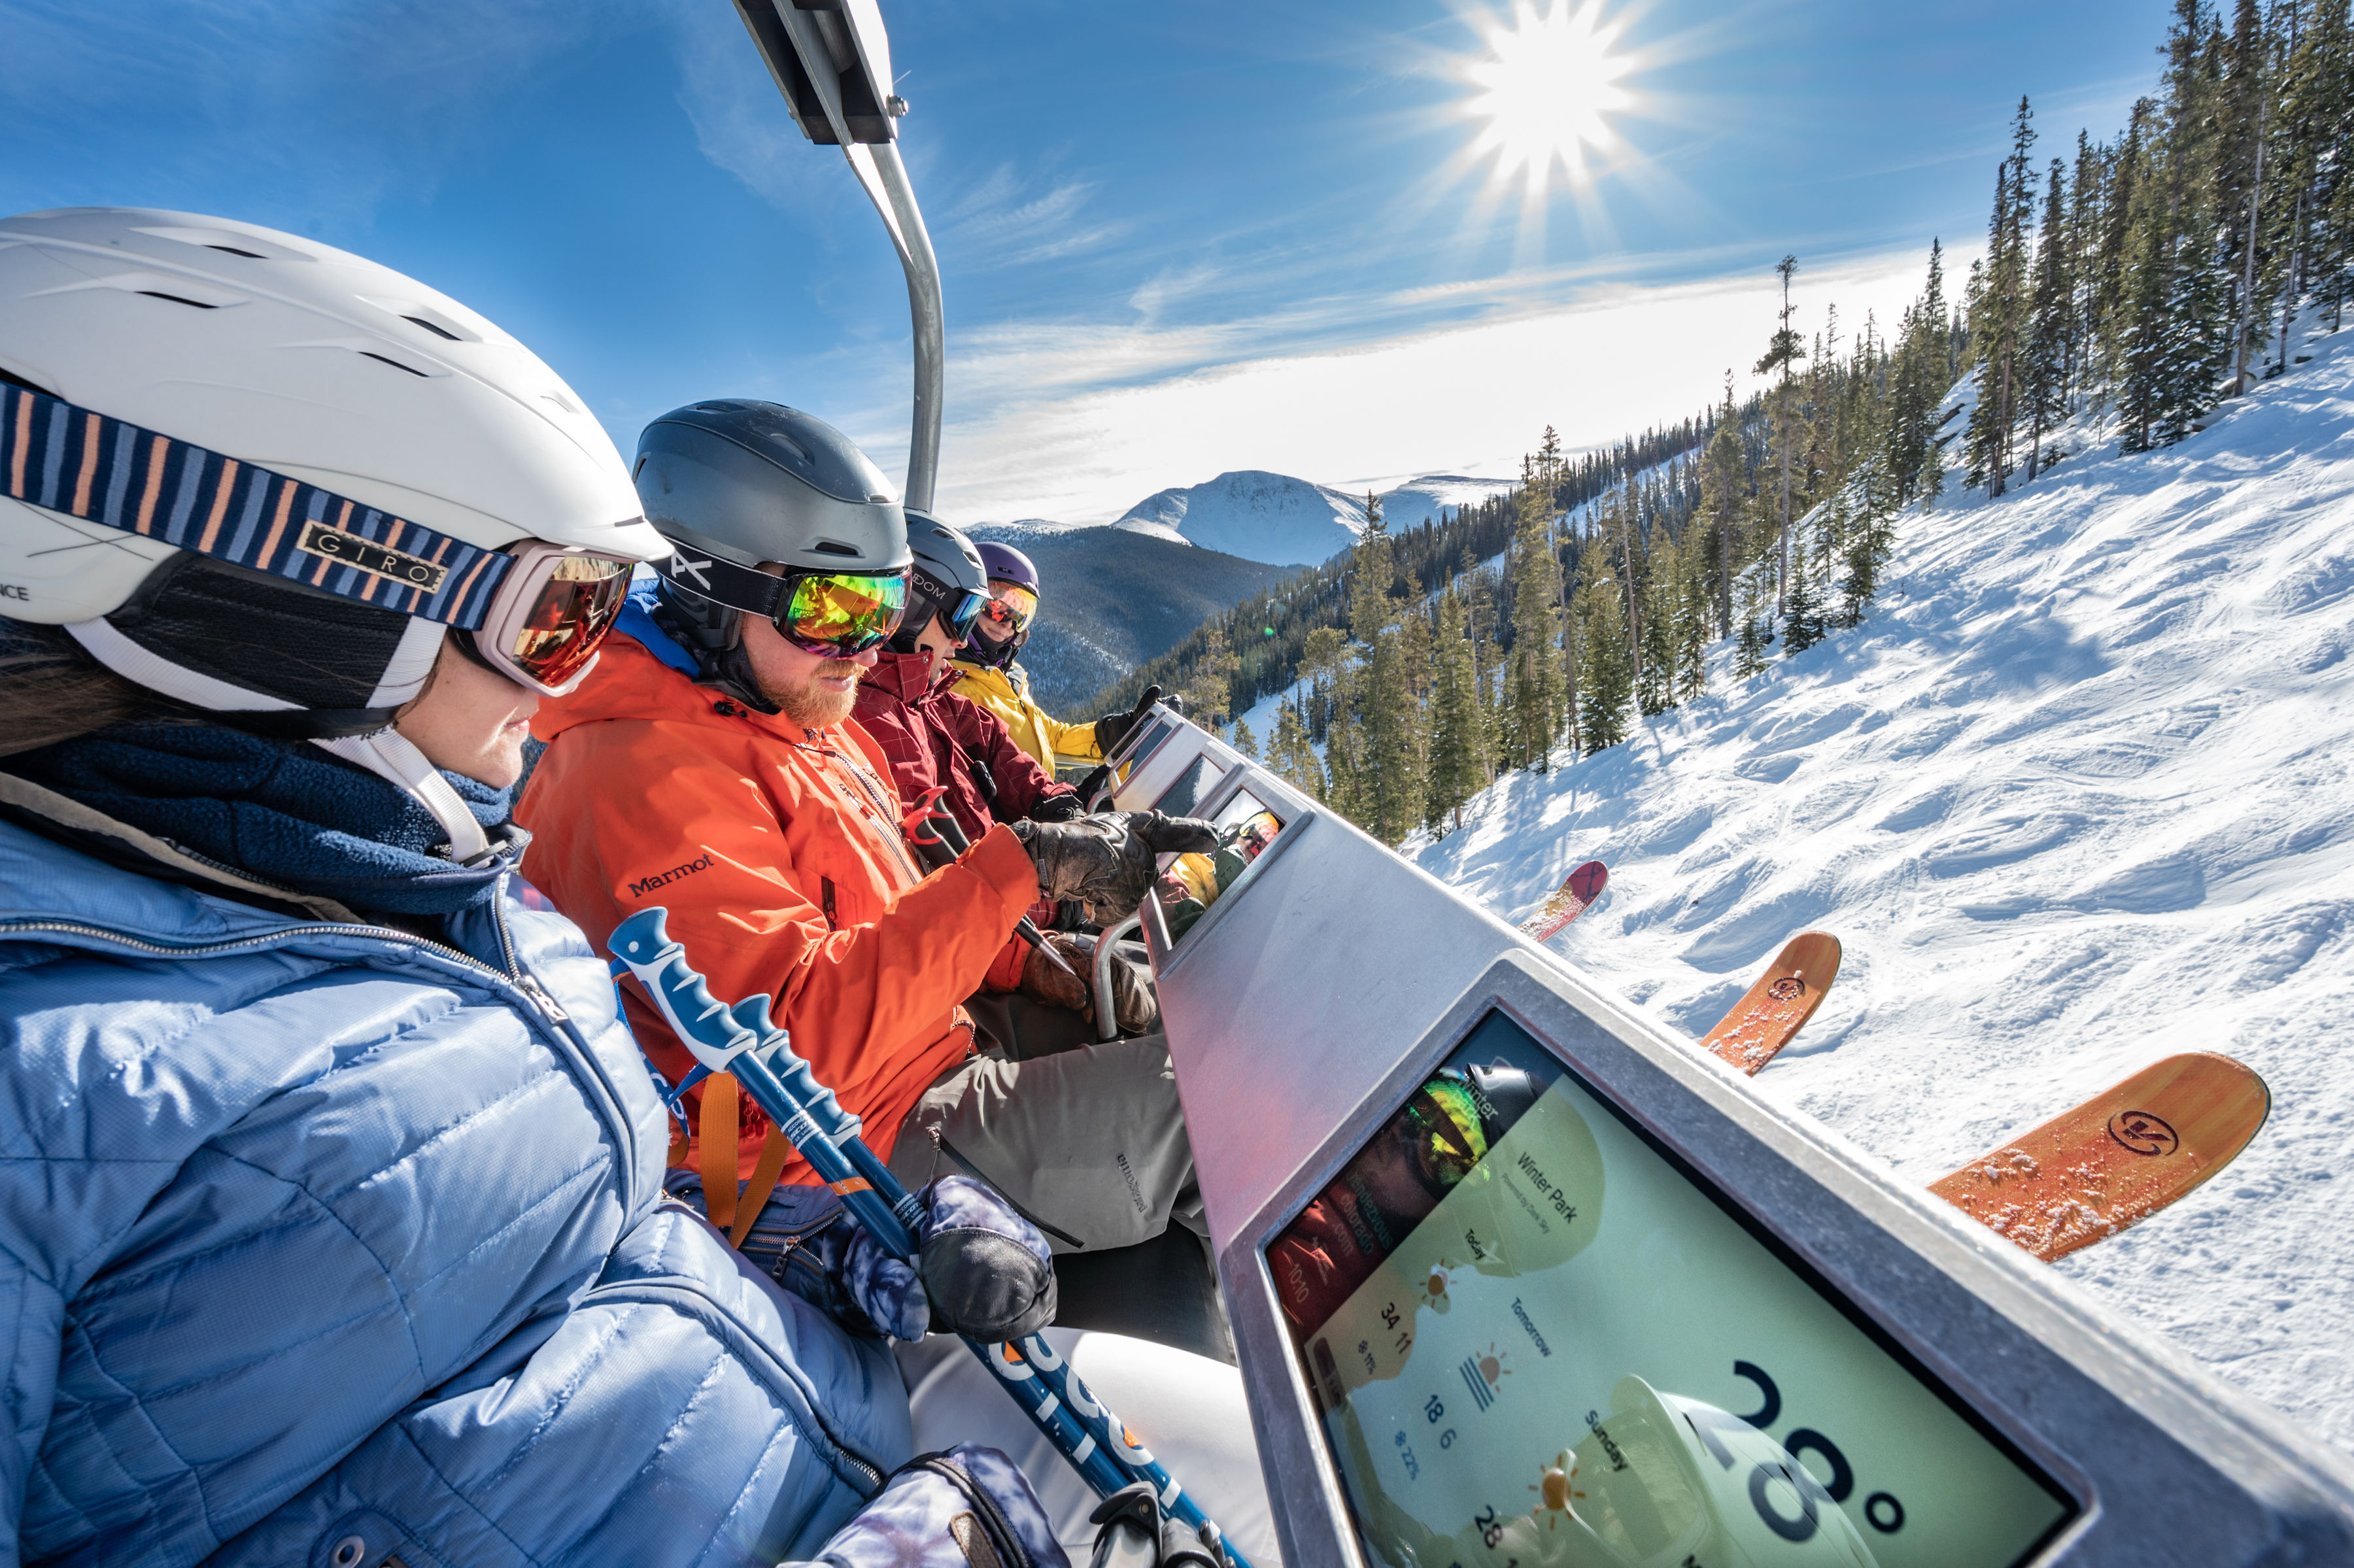 Why you should be advertising your brand to the ski resort audience